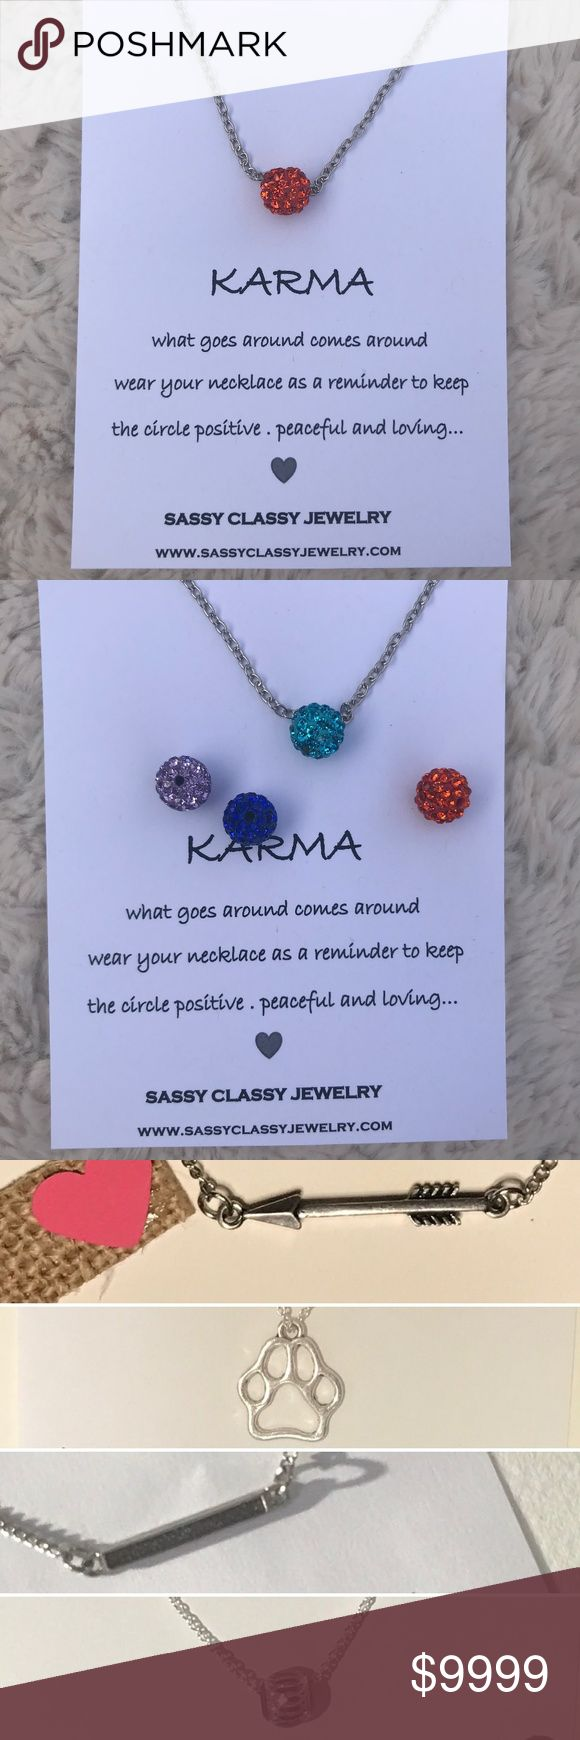 """Karma Necklace Orange Sparkle Bead Valentines Gift PERFECT VALENTINES DAY GIFT IDEA  xxx PRICE FIRM. I HAND MAKE THIS xxx  Orange Sparkle Bead Silver Necklace Gift with """"Karma"""" message card  Need multiples or want a different message card (see last 5 pictures)? No problem message me.   This is the perfect jewelry gift for your best friend, sister, mother, or whatever lady is in your life. Great gift idea for Valentine's Day, Galentine's Day, Christmas gifts, birthday present Sassy Classy…"""